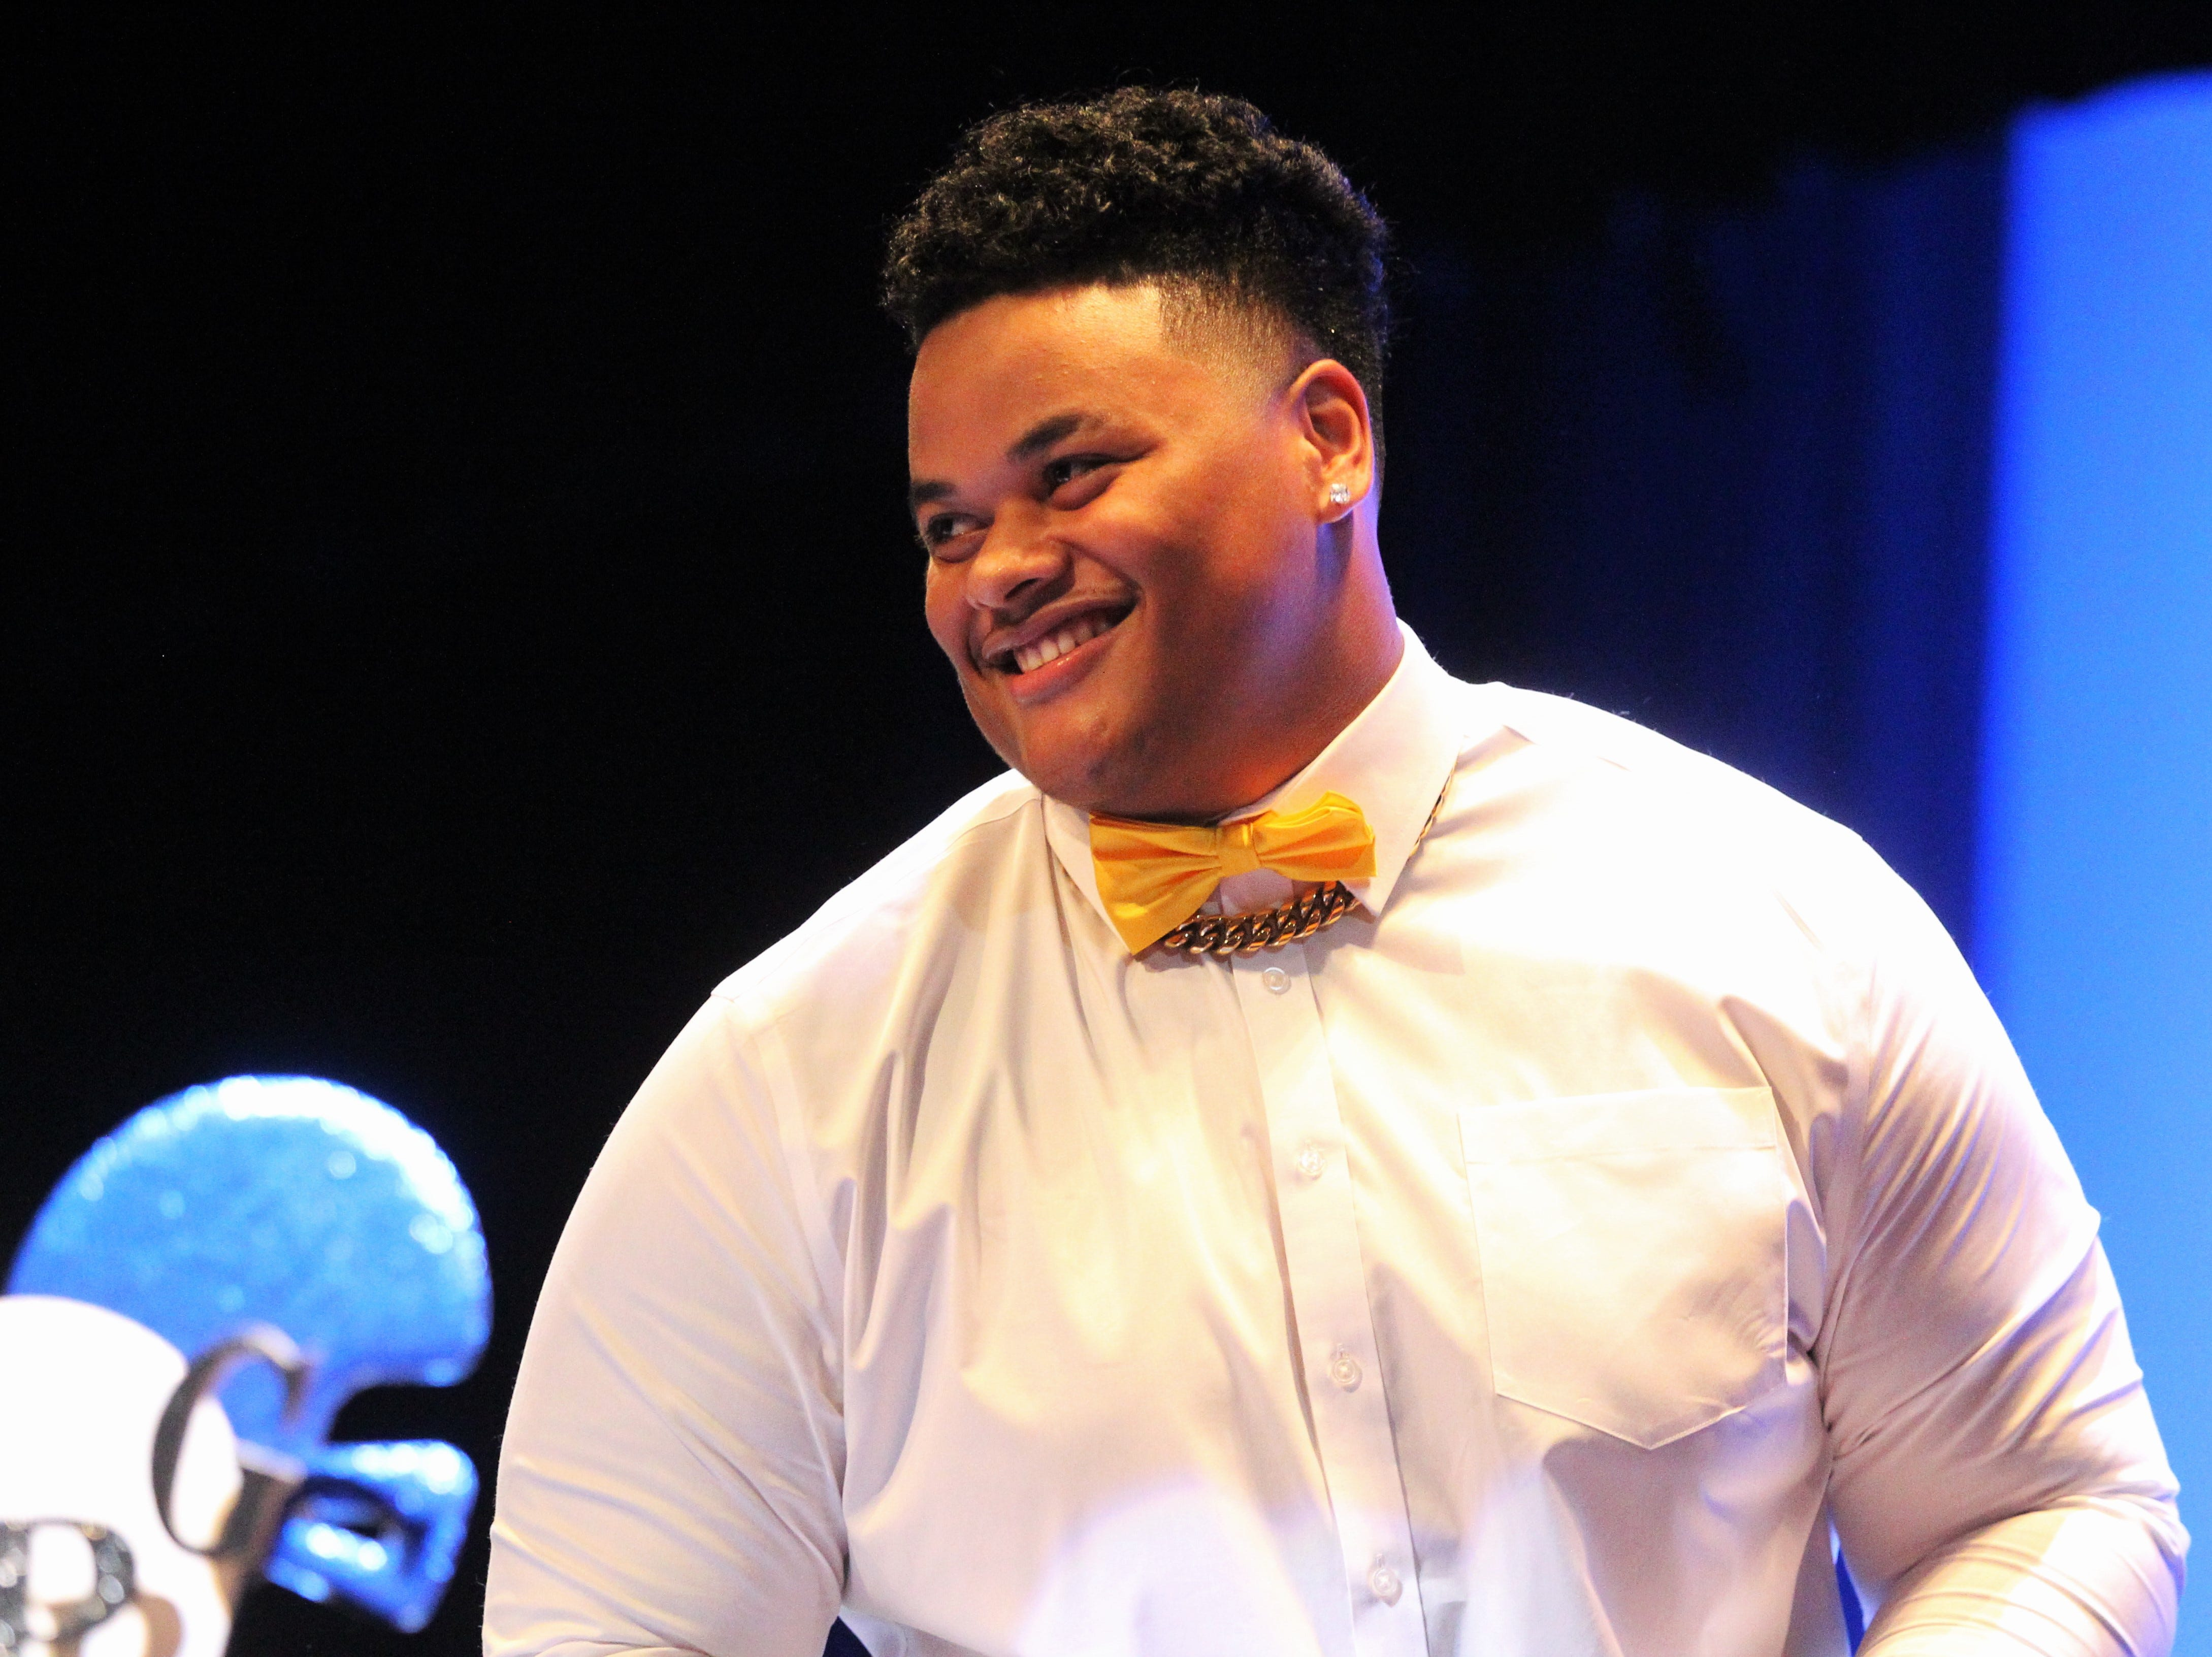 Godby defensive tackle Quentin Jones signed with Kent State during signing ceremonies on National Signing Day, Feb. 6, 2019.